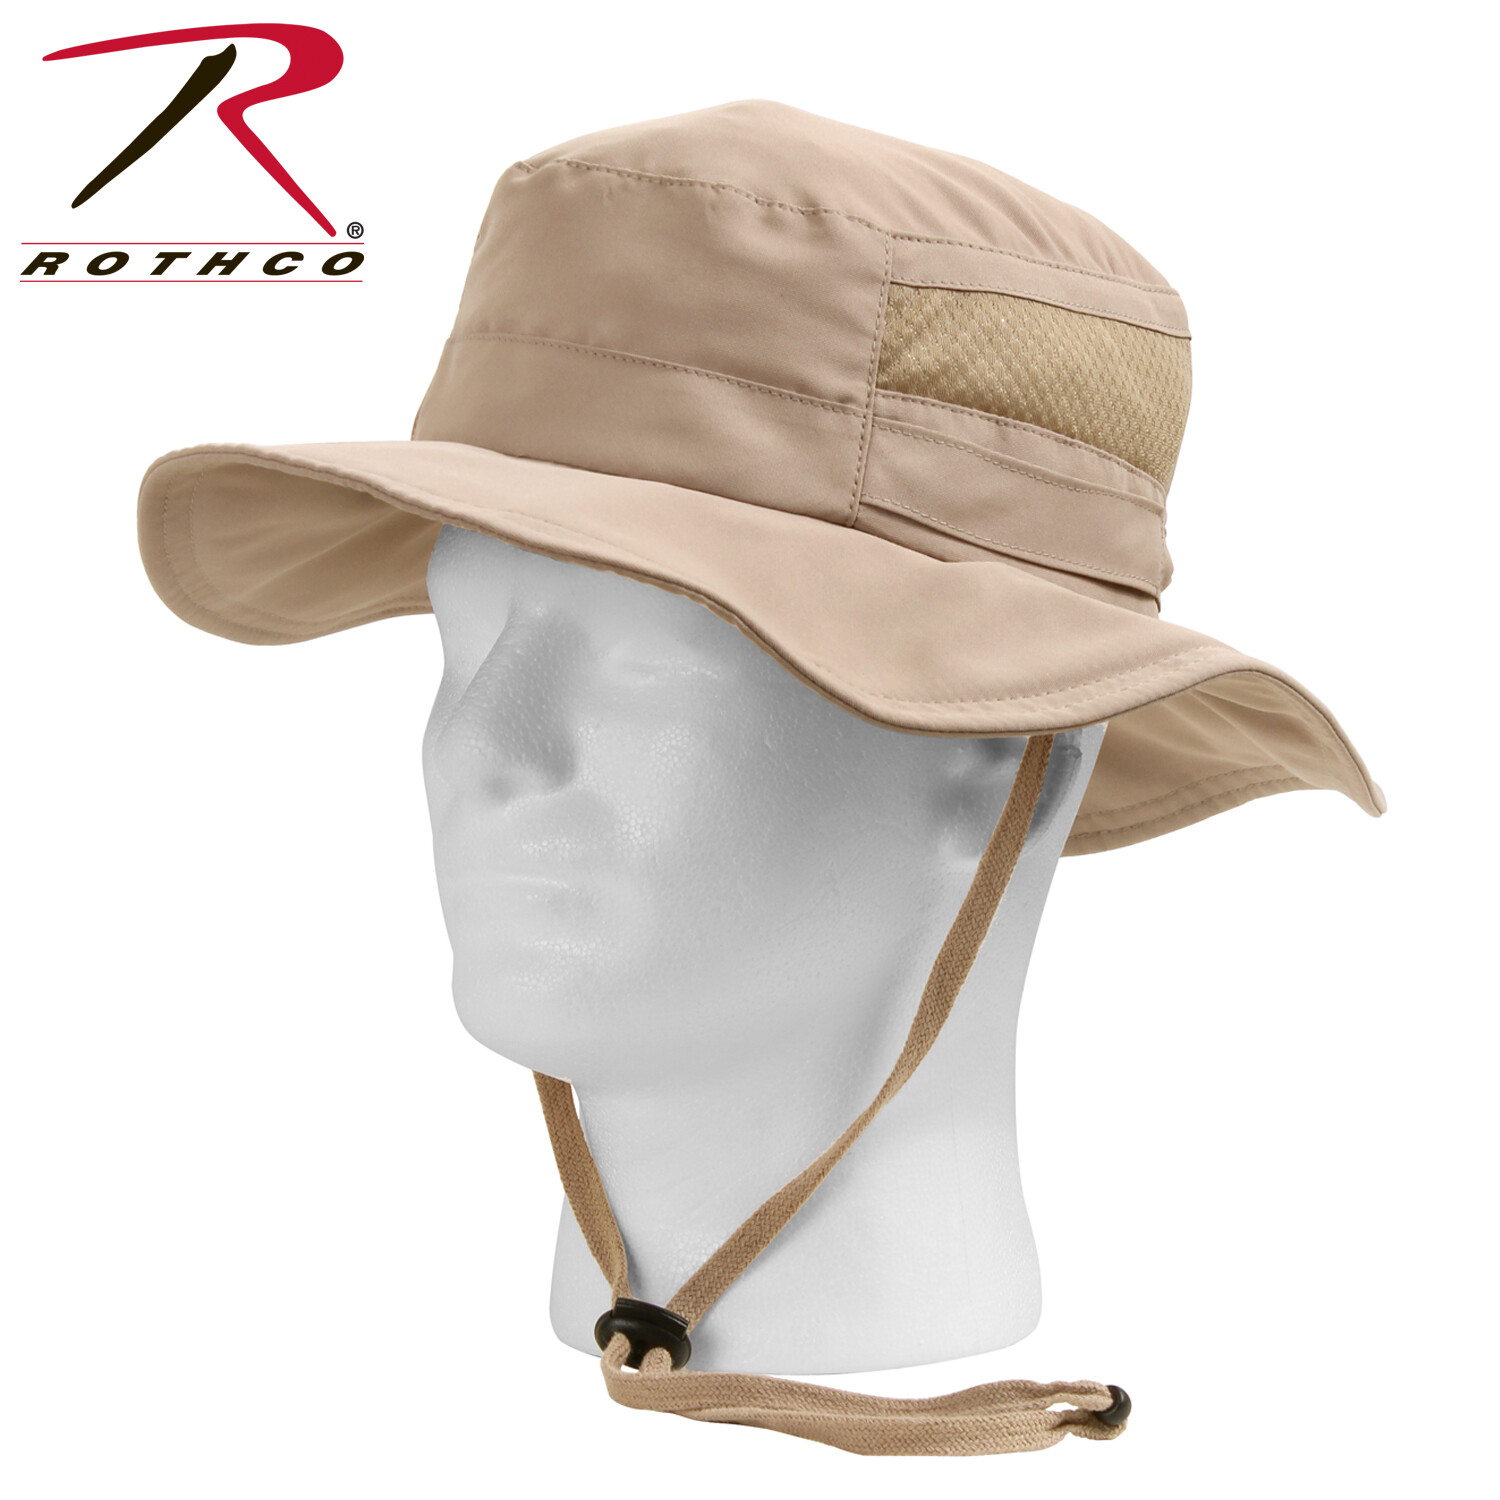 Rothco, 59555, Khaki Lightweight Adjustable Mesh Boonie Hat